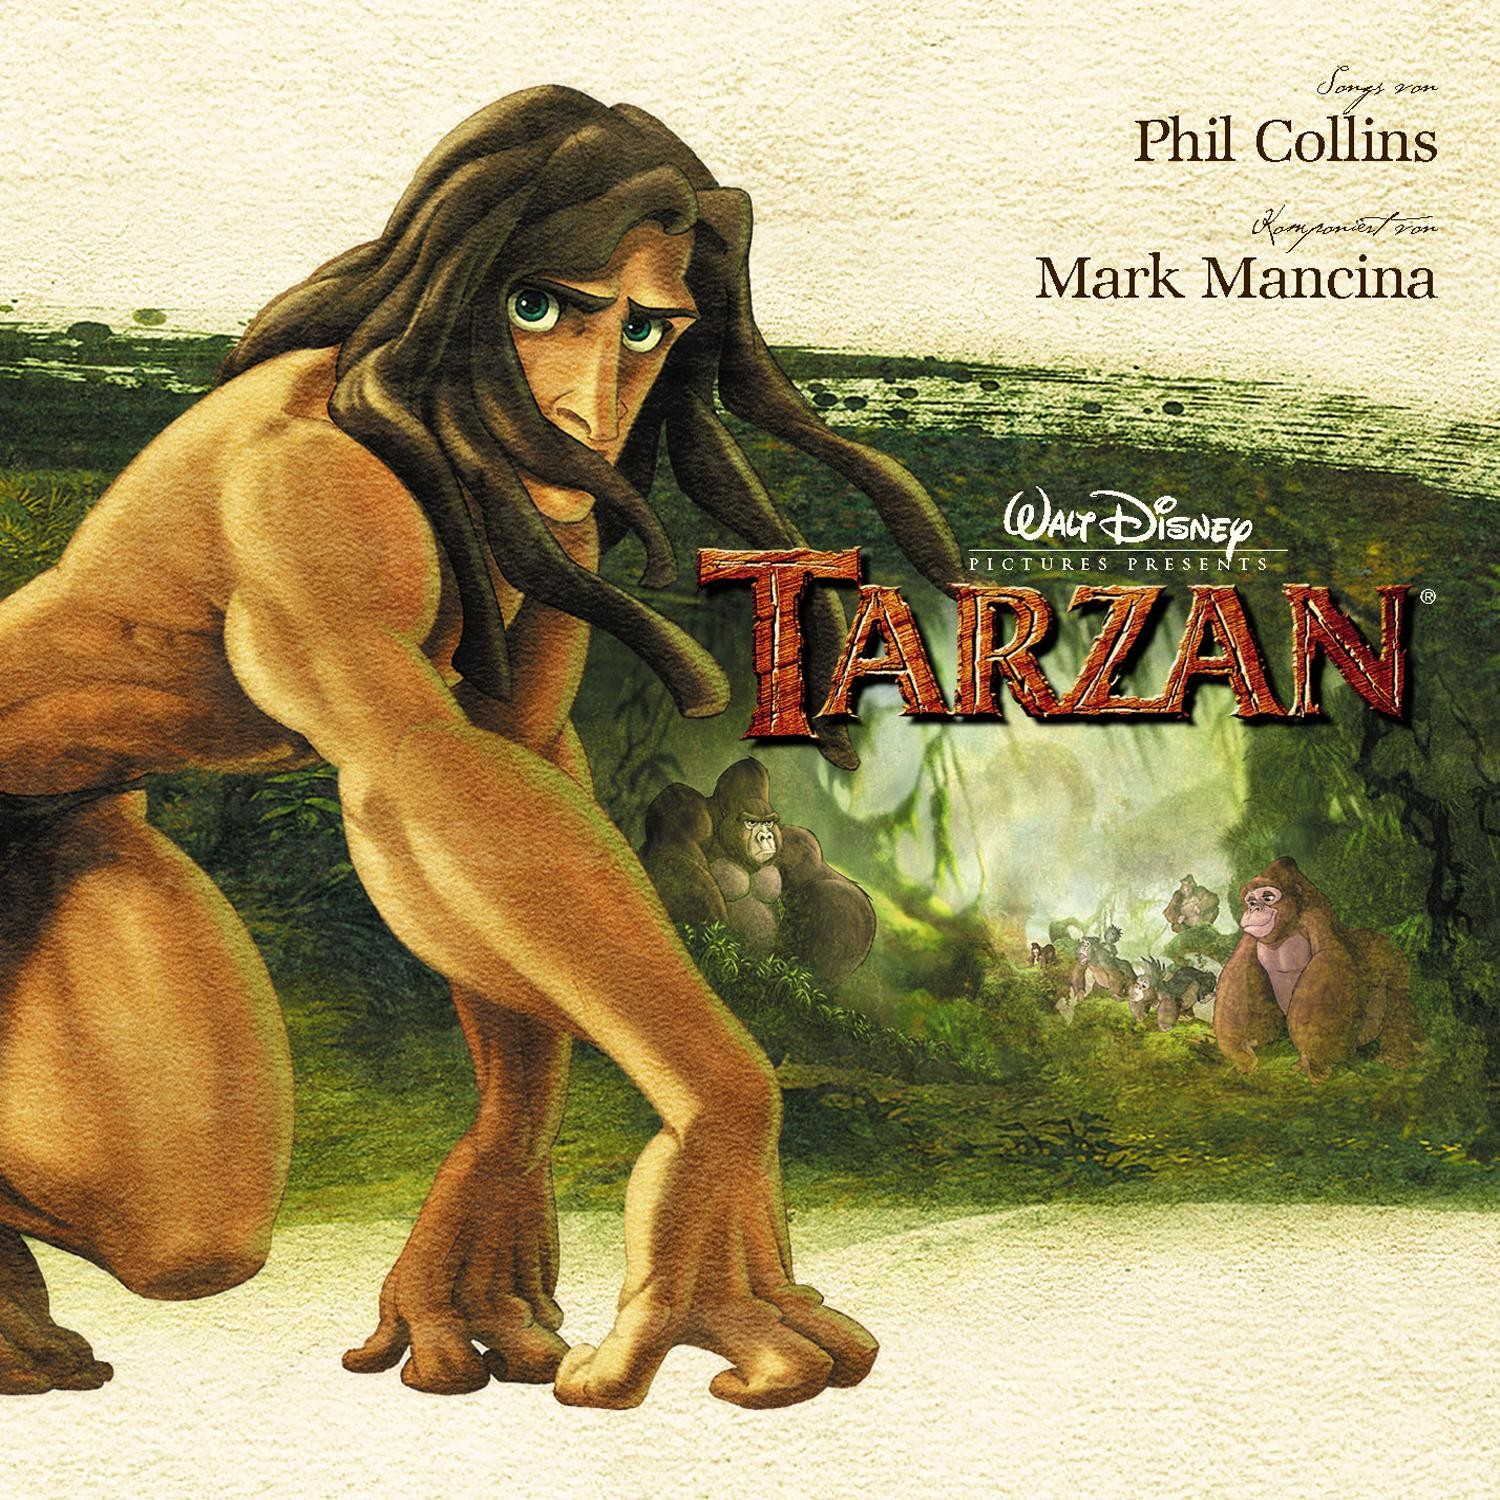 Tarzan Soundtrack The 5 Best Disney Soundtracks of the Past Twenty Years